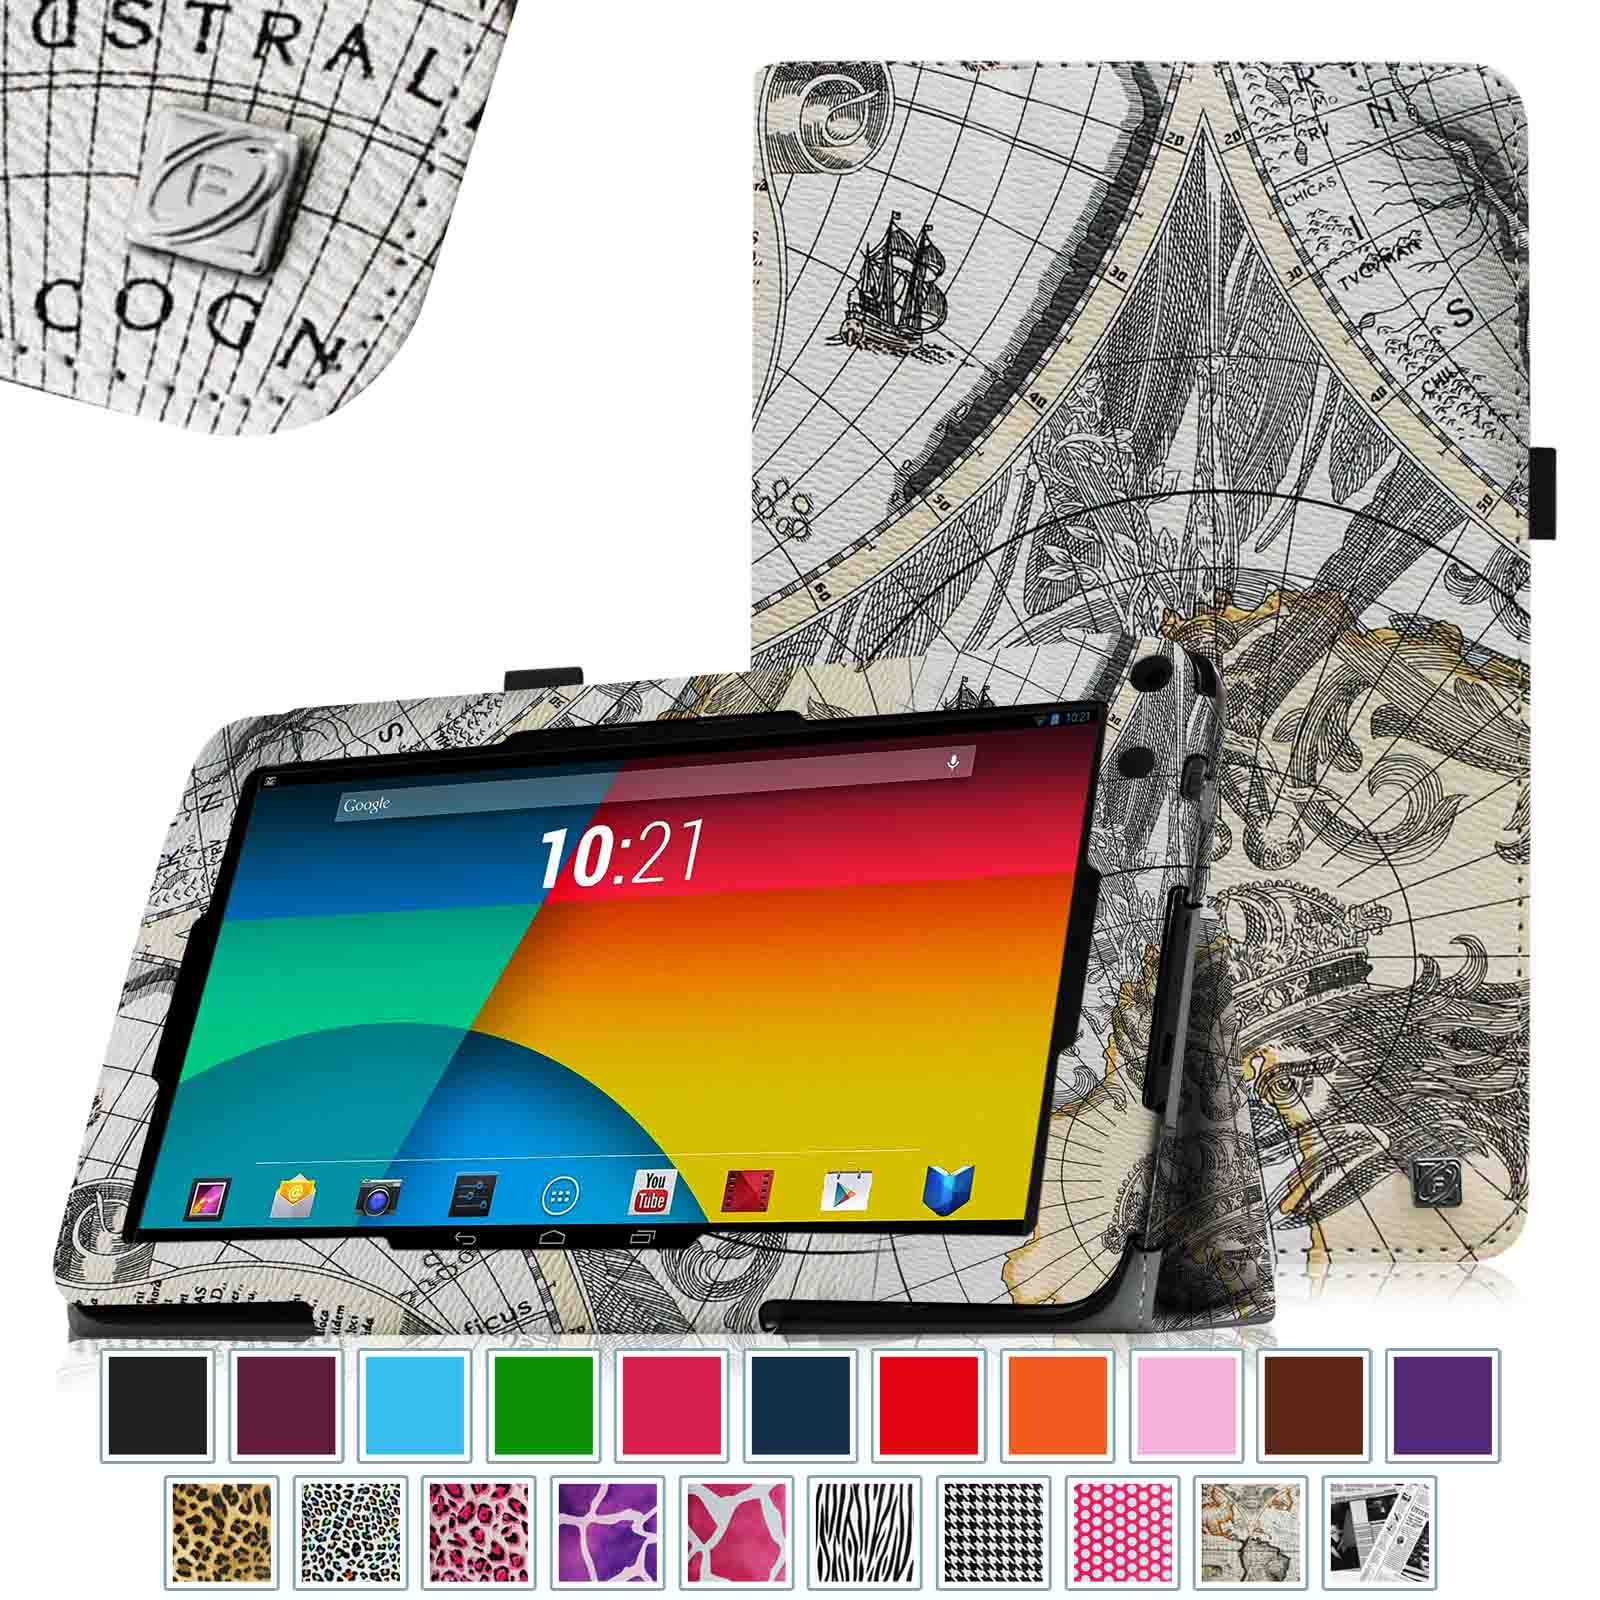 "RCA 9"" Tablet Case - Fintie Premium Leather Cover with Stylus Holder for RCA 9"" Tablet (Model# RCT6691W3), Map Design"